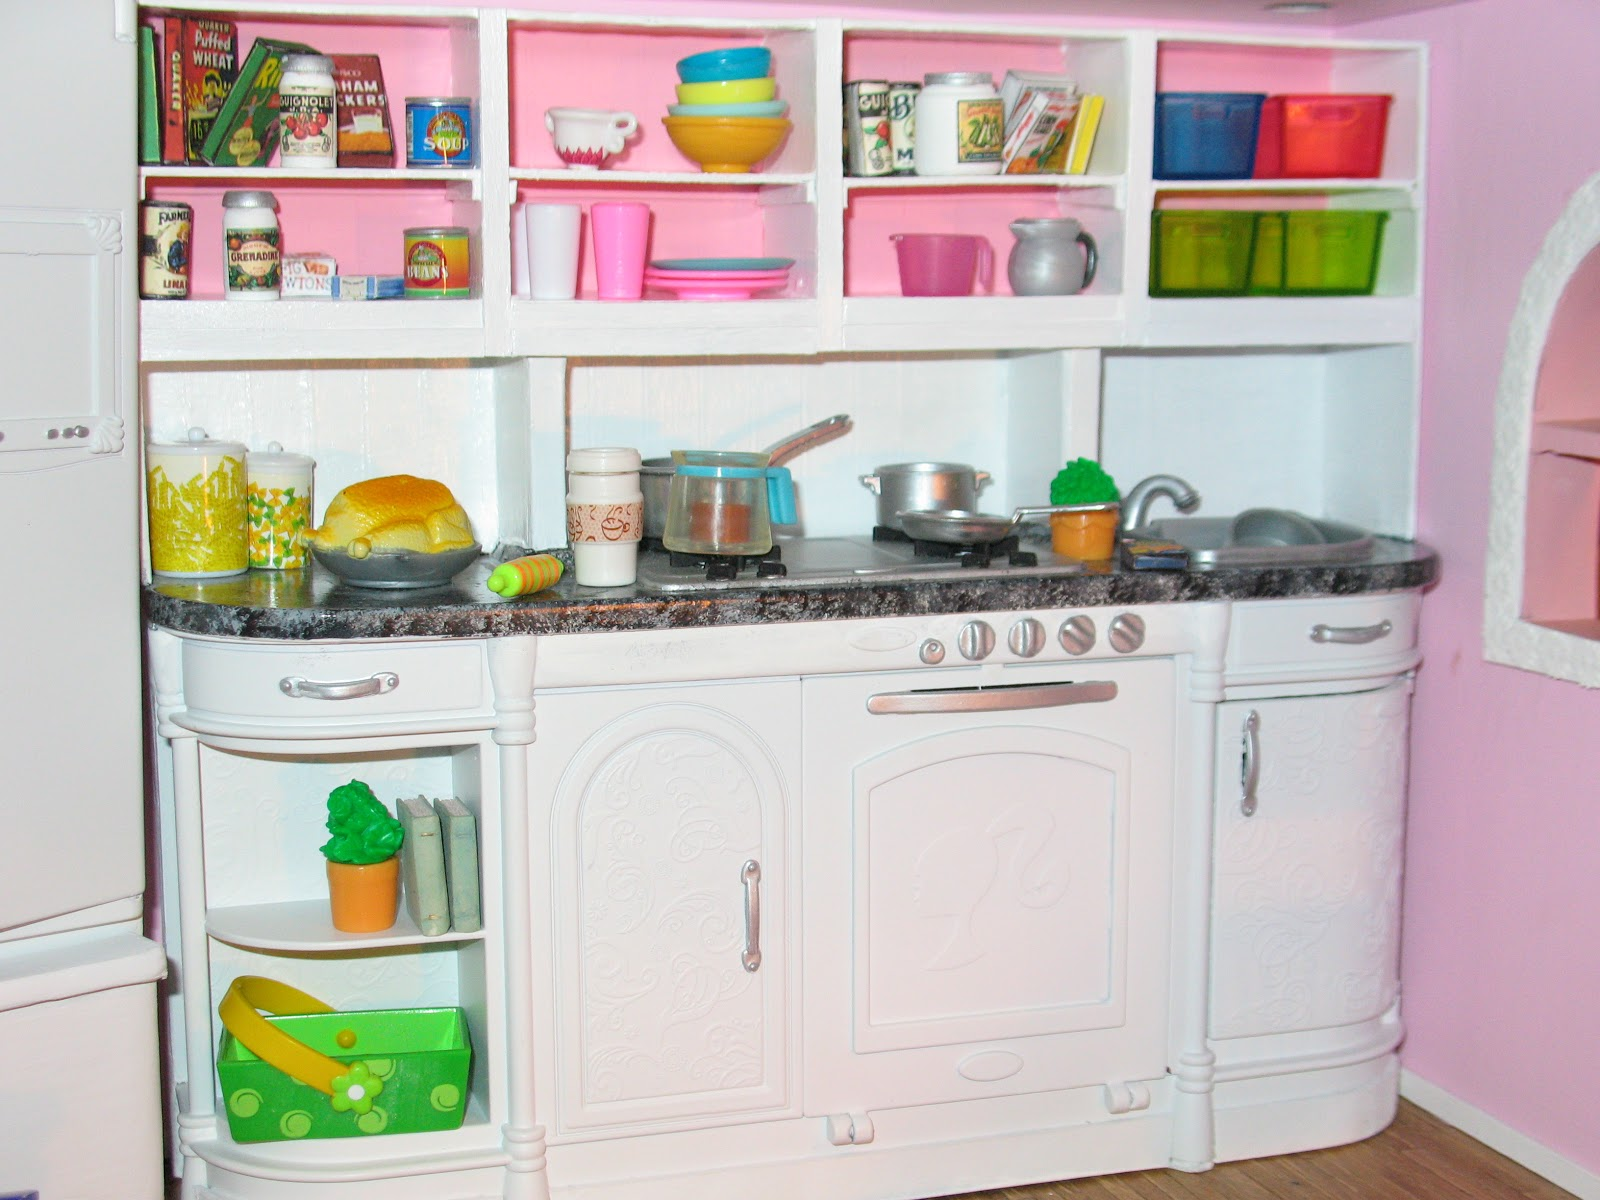 Artsy fartsy barbie 39 s kitchen - S kitchens ...